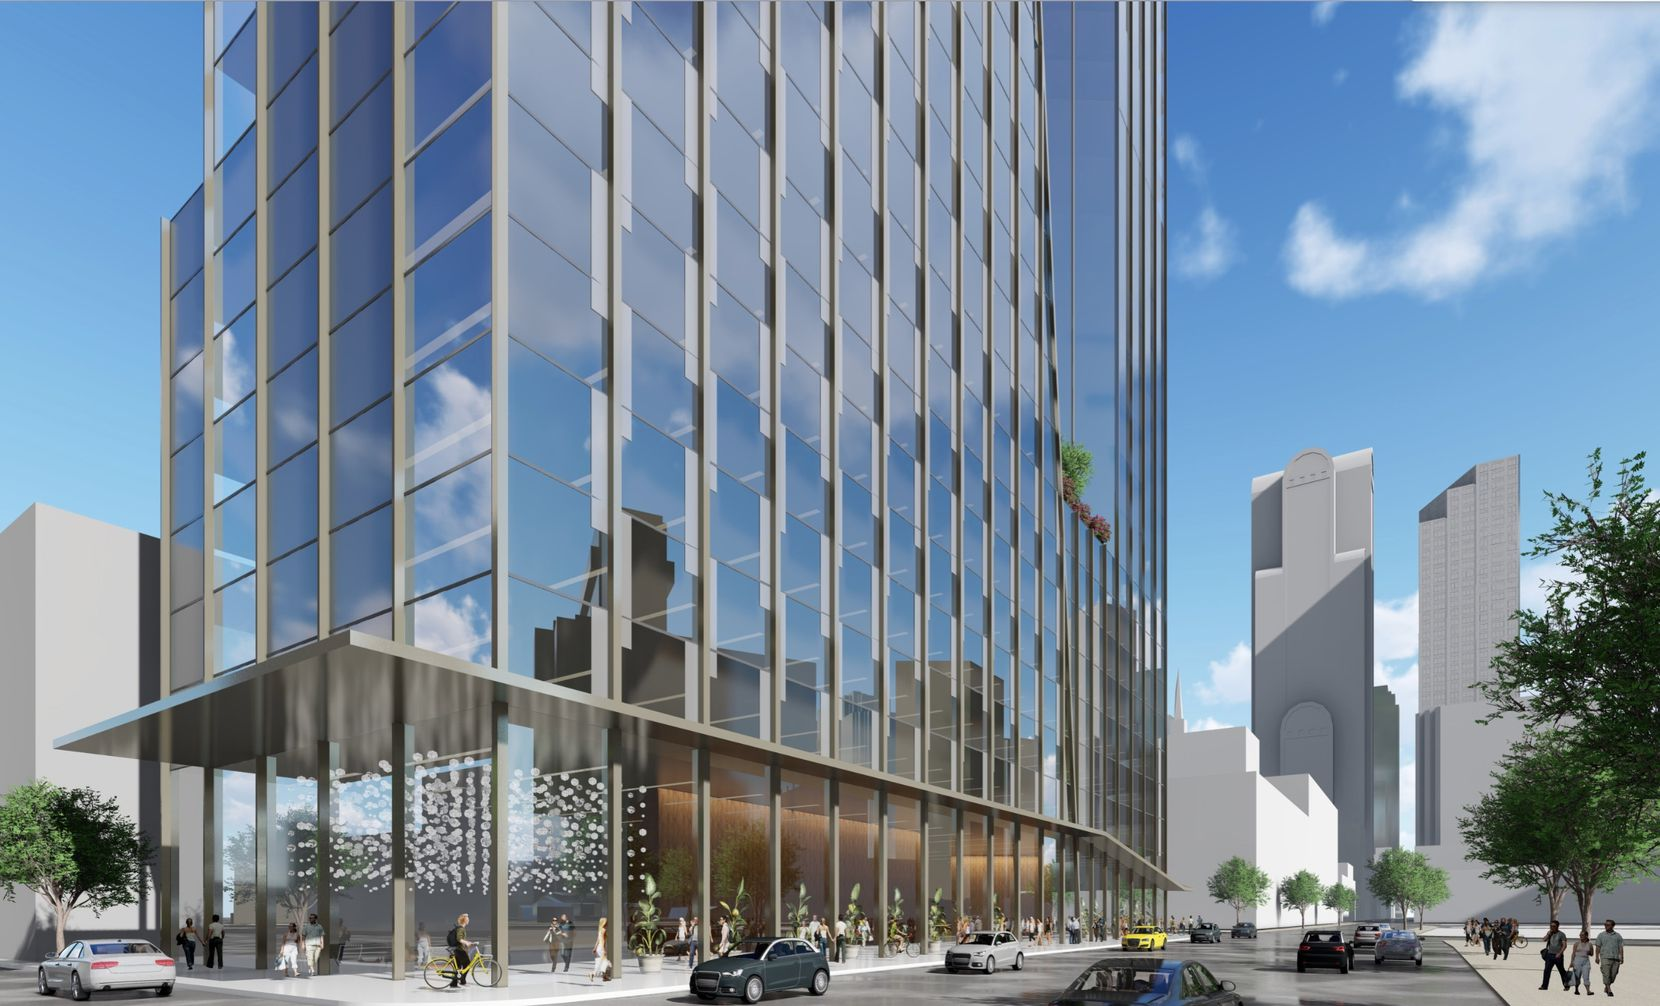 Dallas property developer and investor Scott Rohrman's 42 Real Estate is working on plans for a two-building skyscraper project at Elm and Pearl streets in downtown Dallas. A street view of the project.